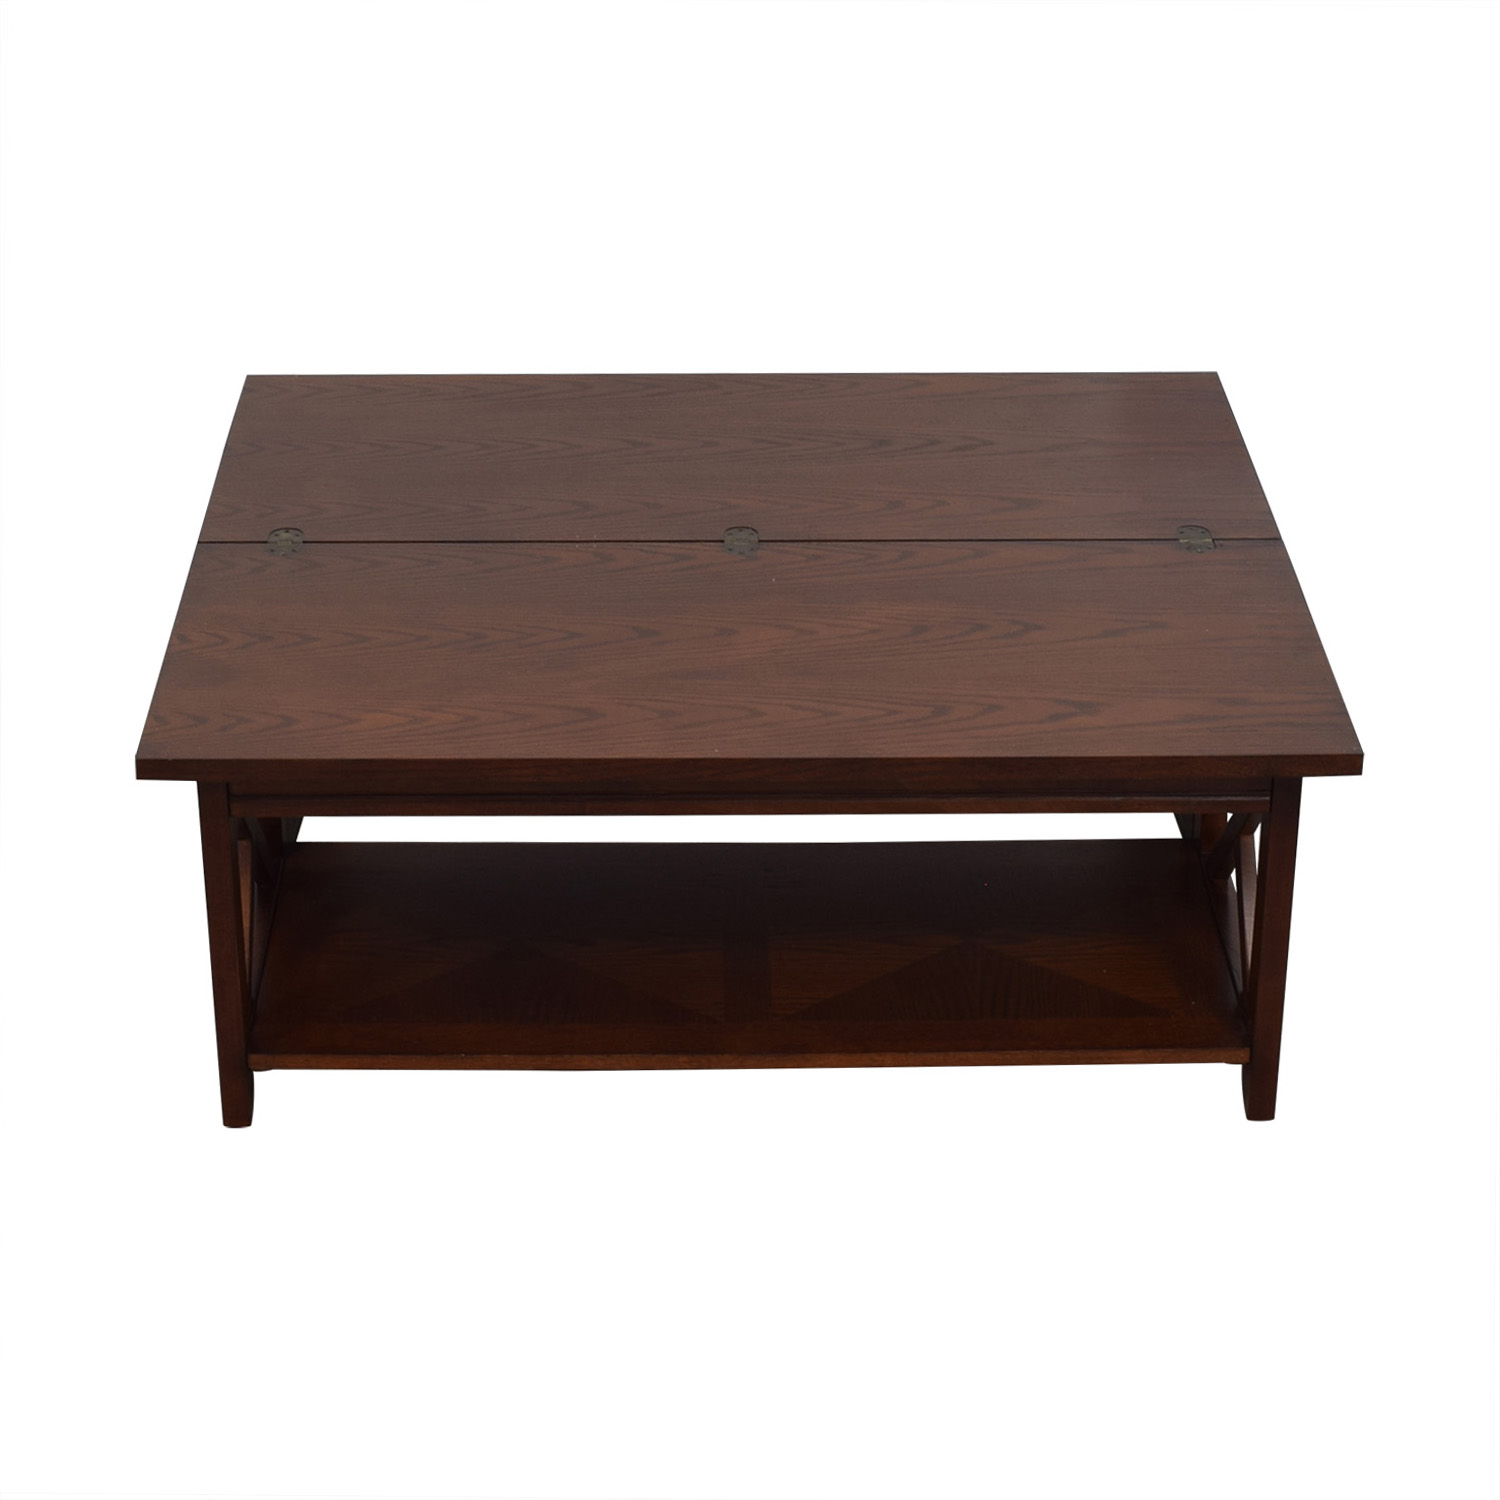 55 Off Raymour Flanigan Tucson Extendable Coffee Table Tables